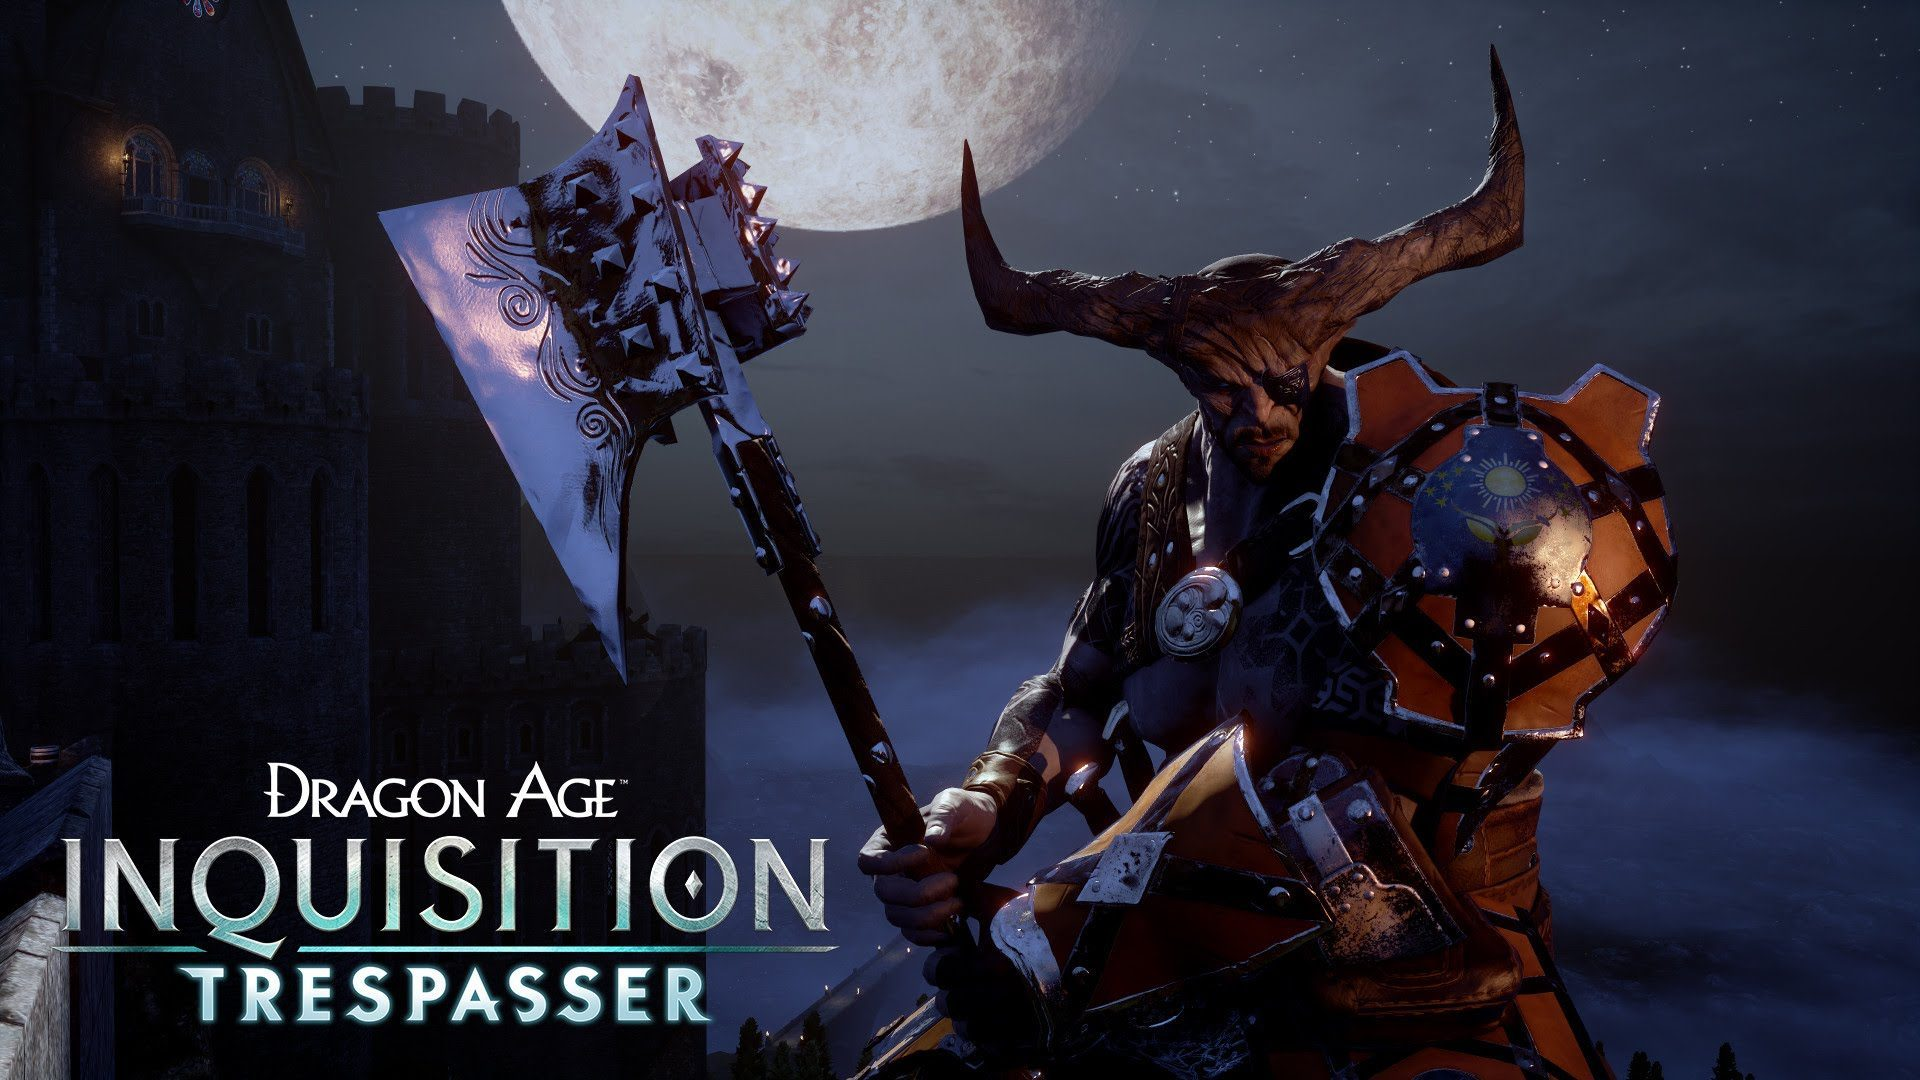 Dragon Age: Inquistion - Trespasser